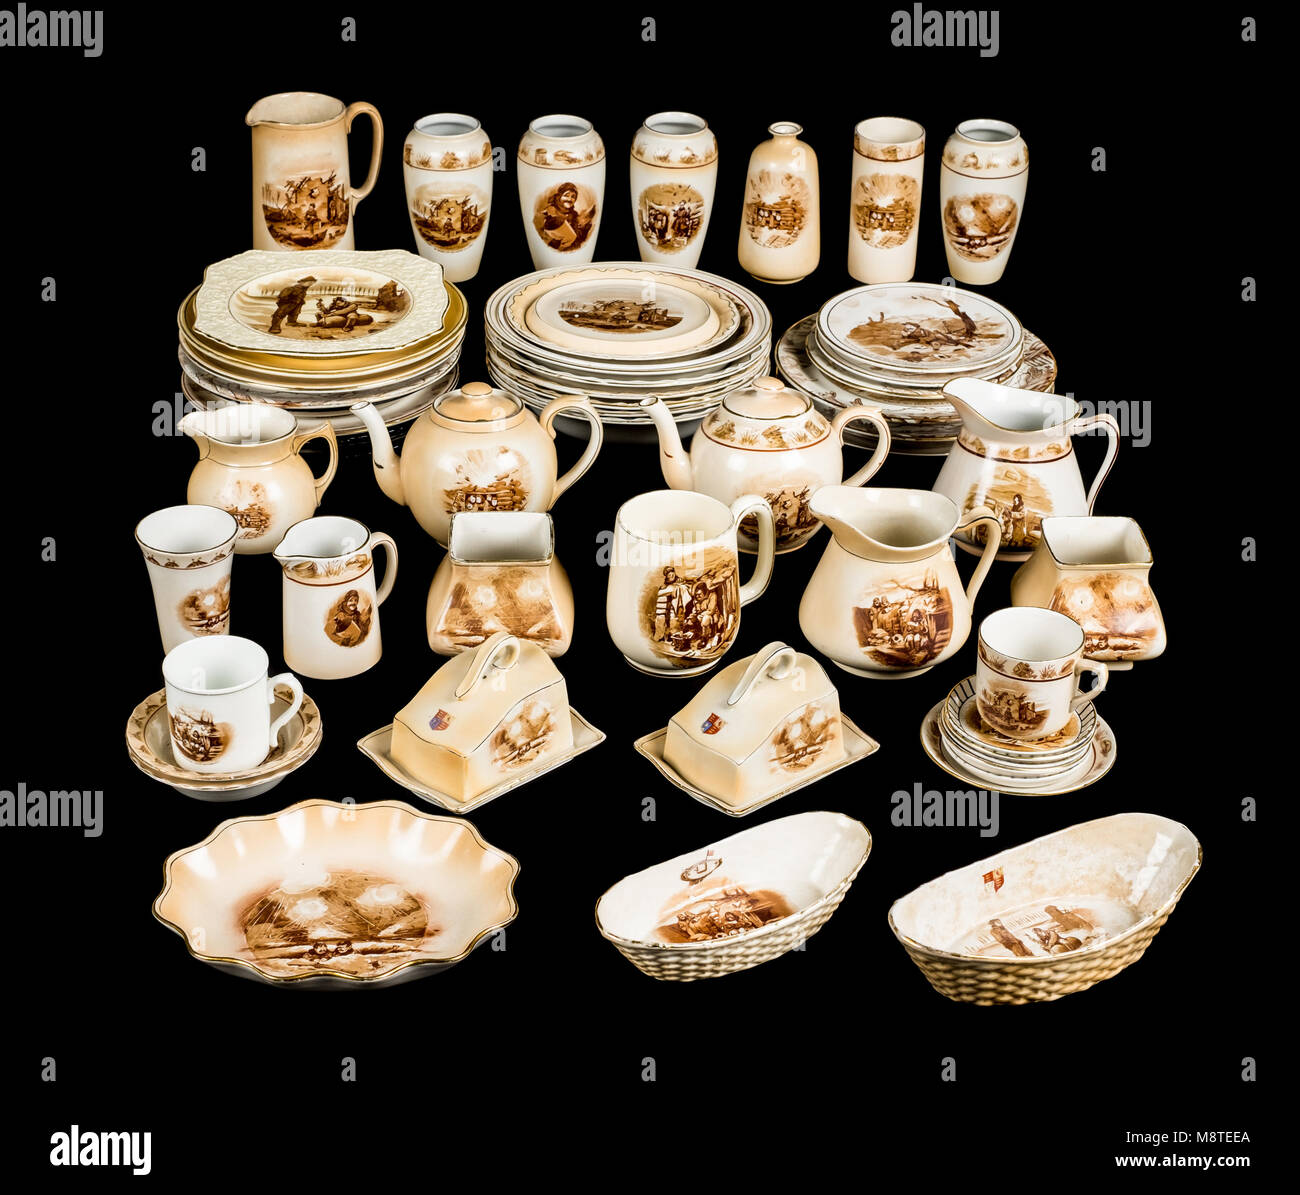 Collection of British pottery (mostly by Grimwades) decorated with 'Old Bill' characters from the famous - Stock Image